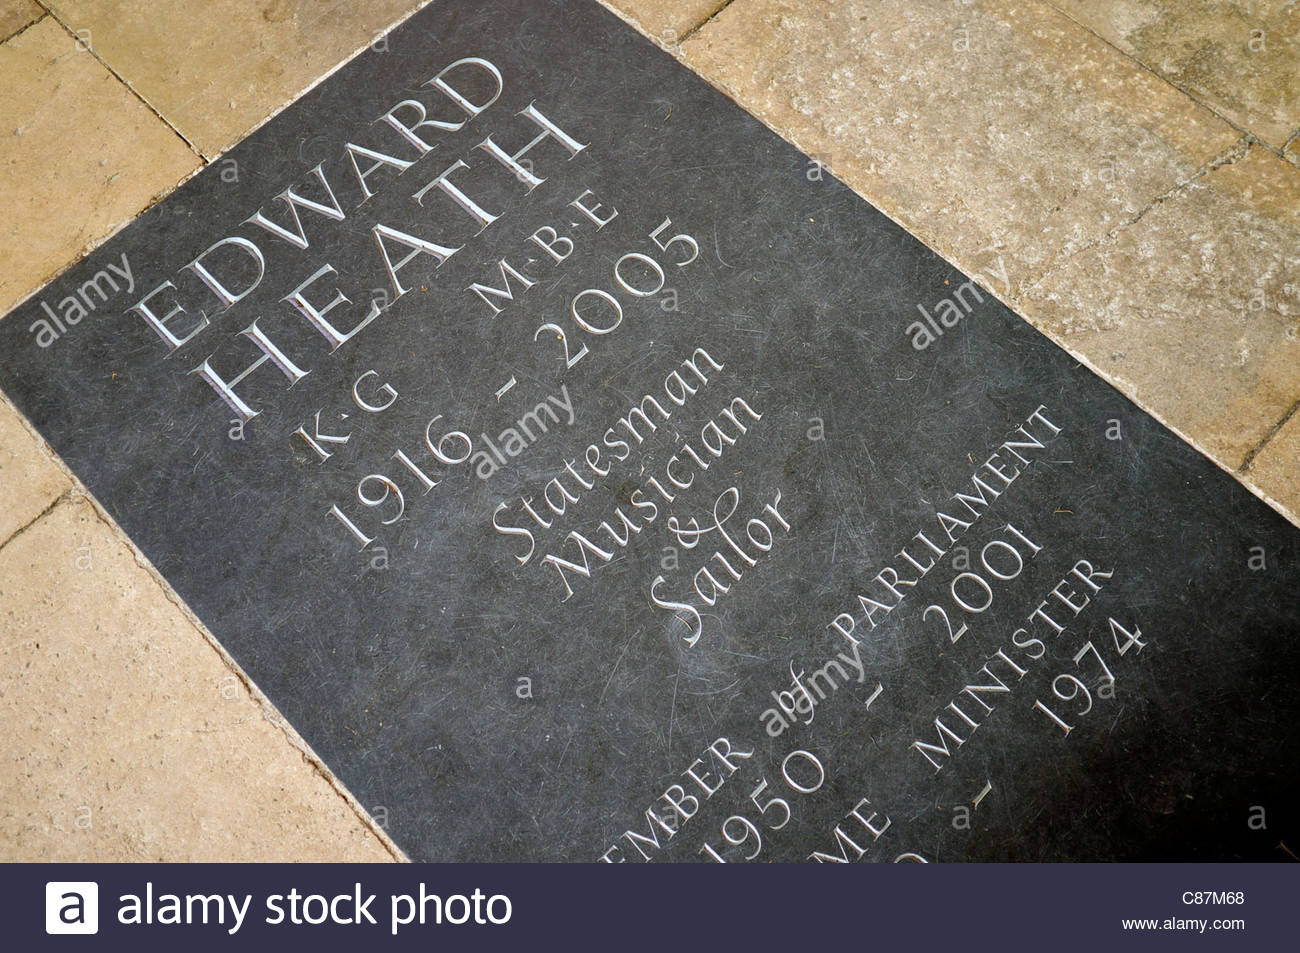 Memorial plaque for Edward Heath, who's ashes were interred in Salisbury Cathedral in Wiltshire, UK. Stock Photo